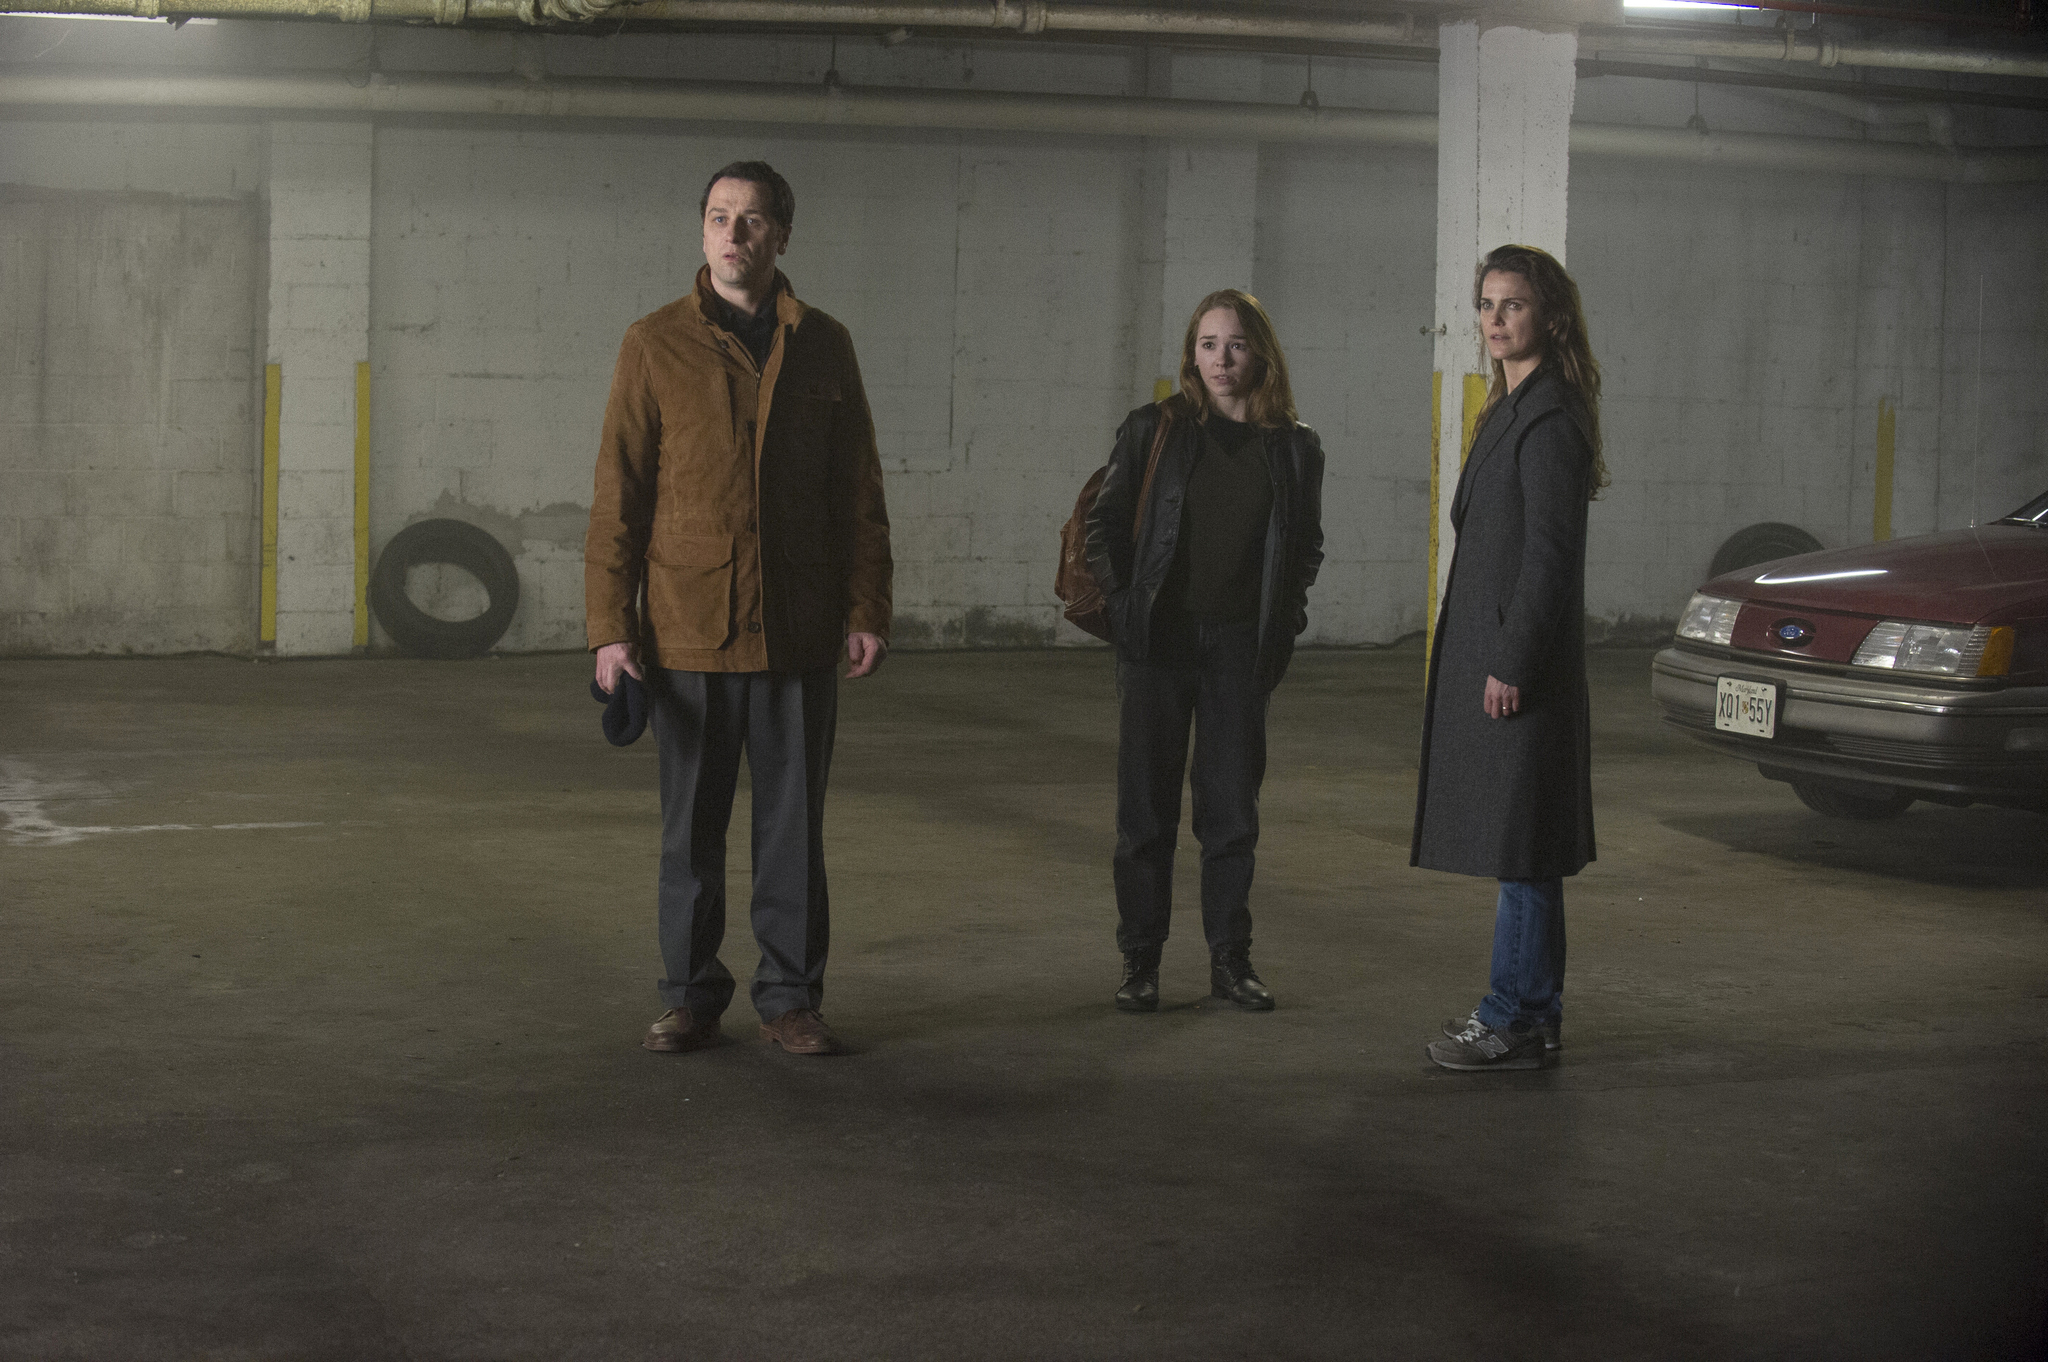 Keri Russell, Matthew Rhys, and Holly Taylor in The Americans (2013)